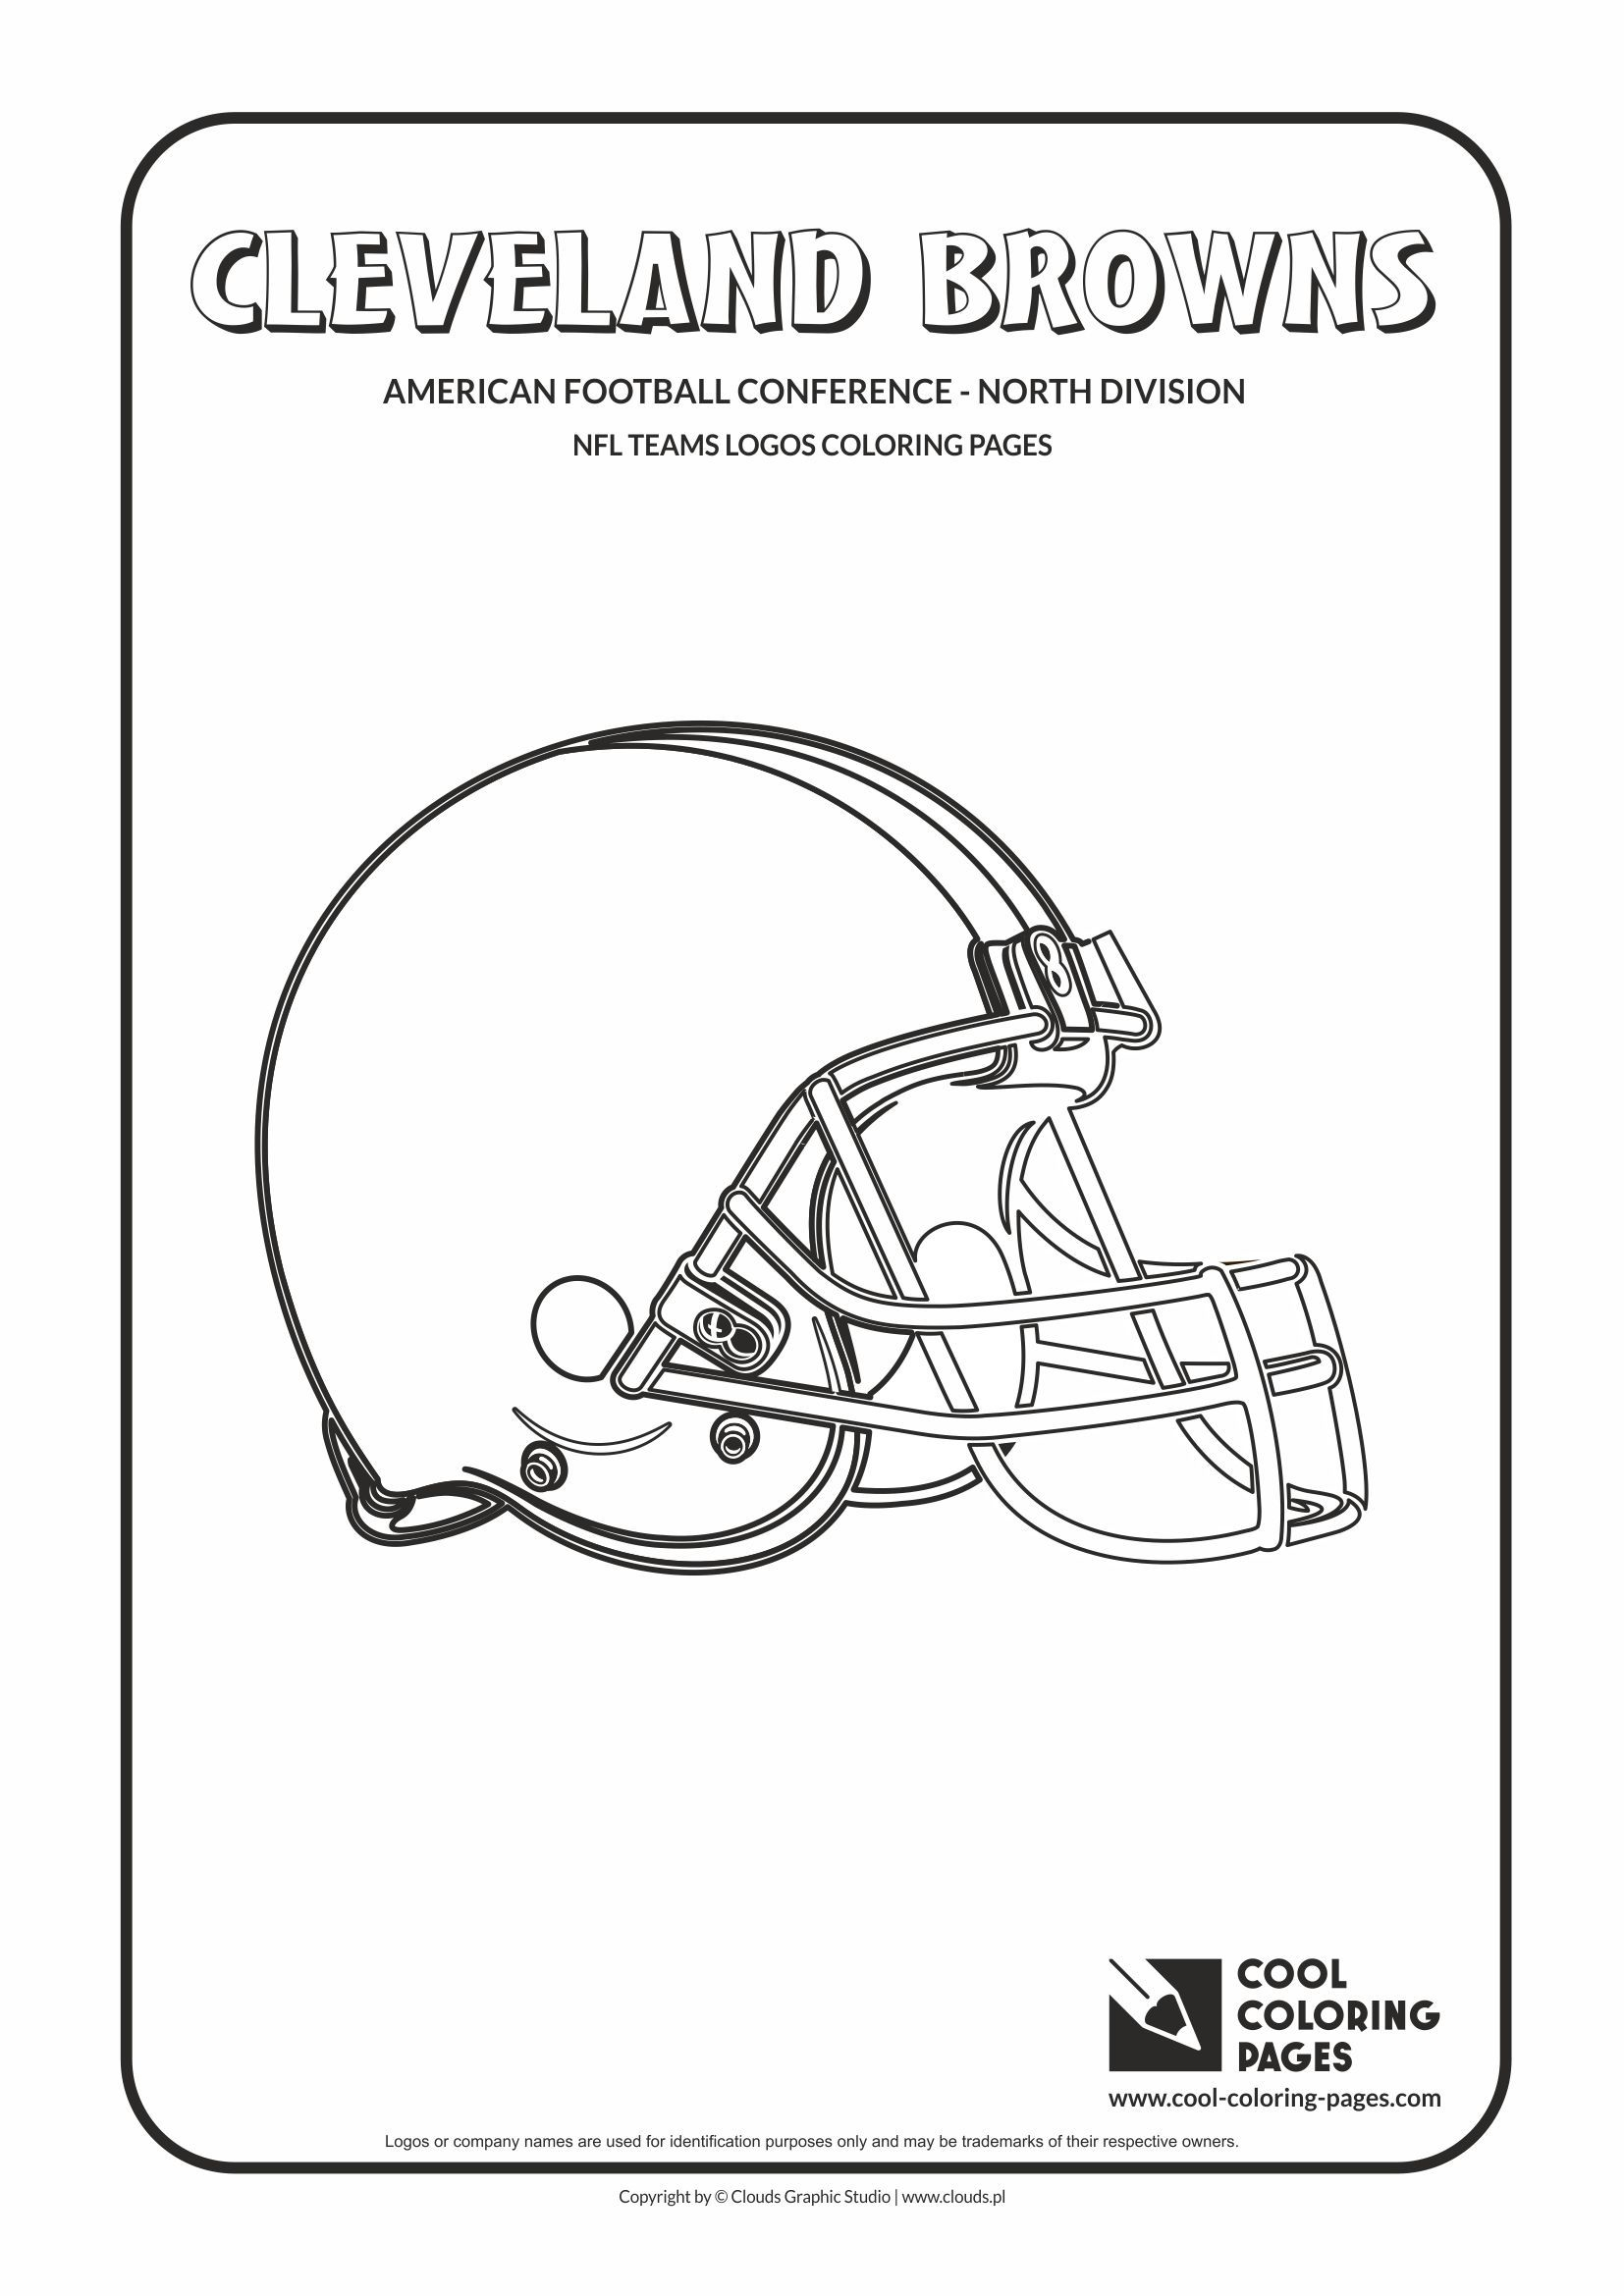 cleveland browns coloring pages cool coloring pages nfl american football clubs logos pages cleveland coloring browns